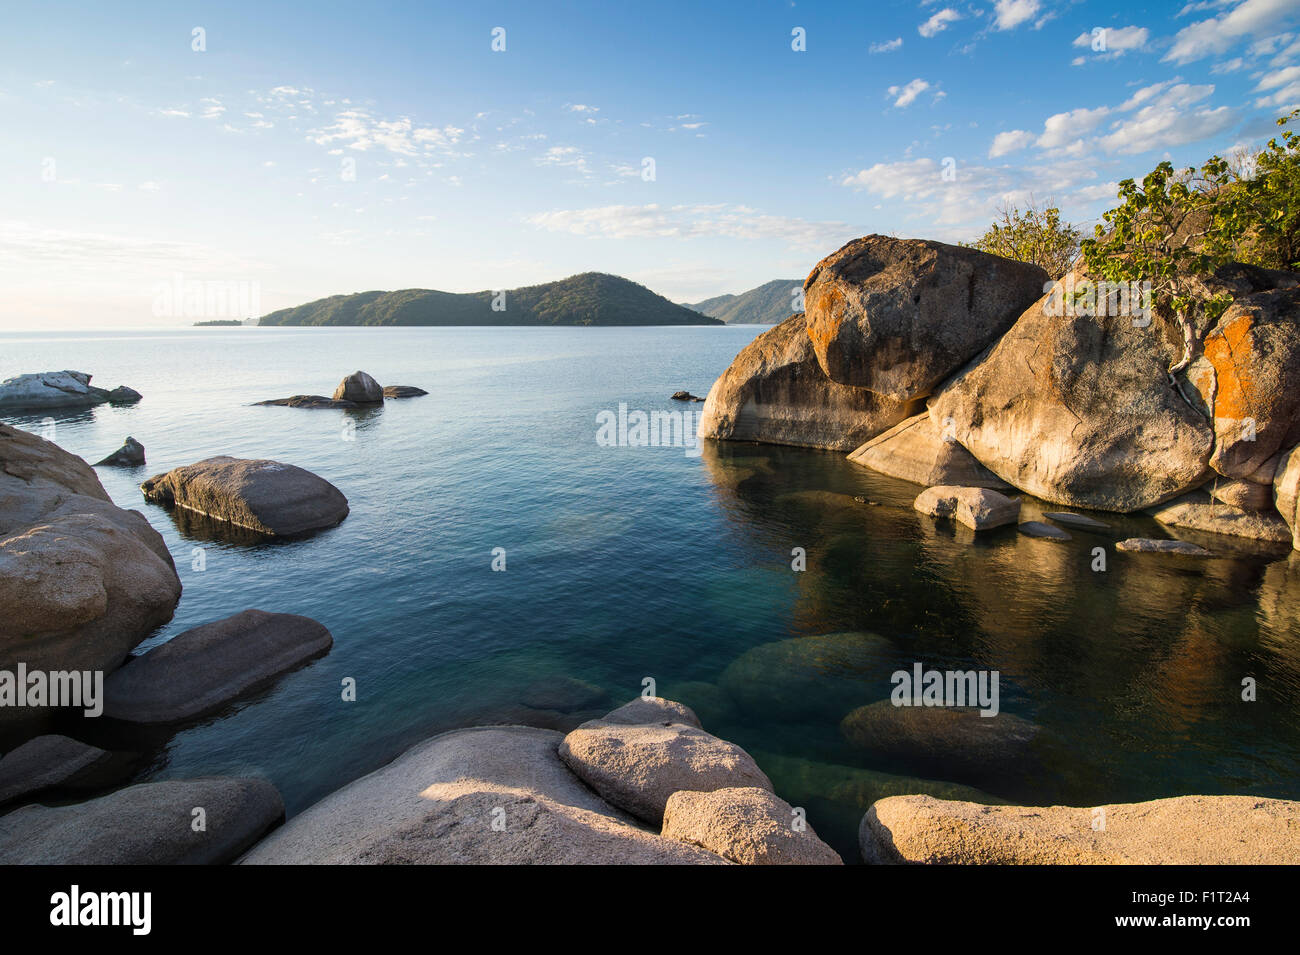 Otter Point at sunset, Lake Malawi National Park, UNESCO World Heritage Site, Cape Maclear, Malawi, Africa - Stock Image